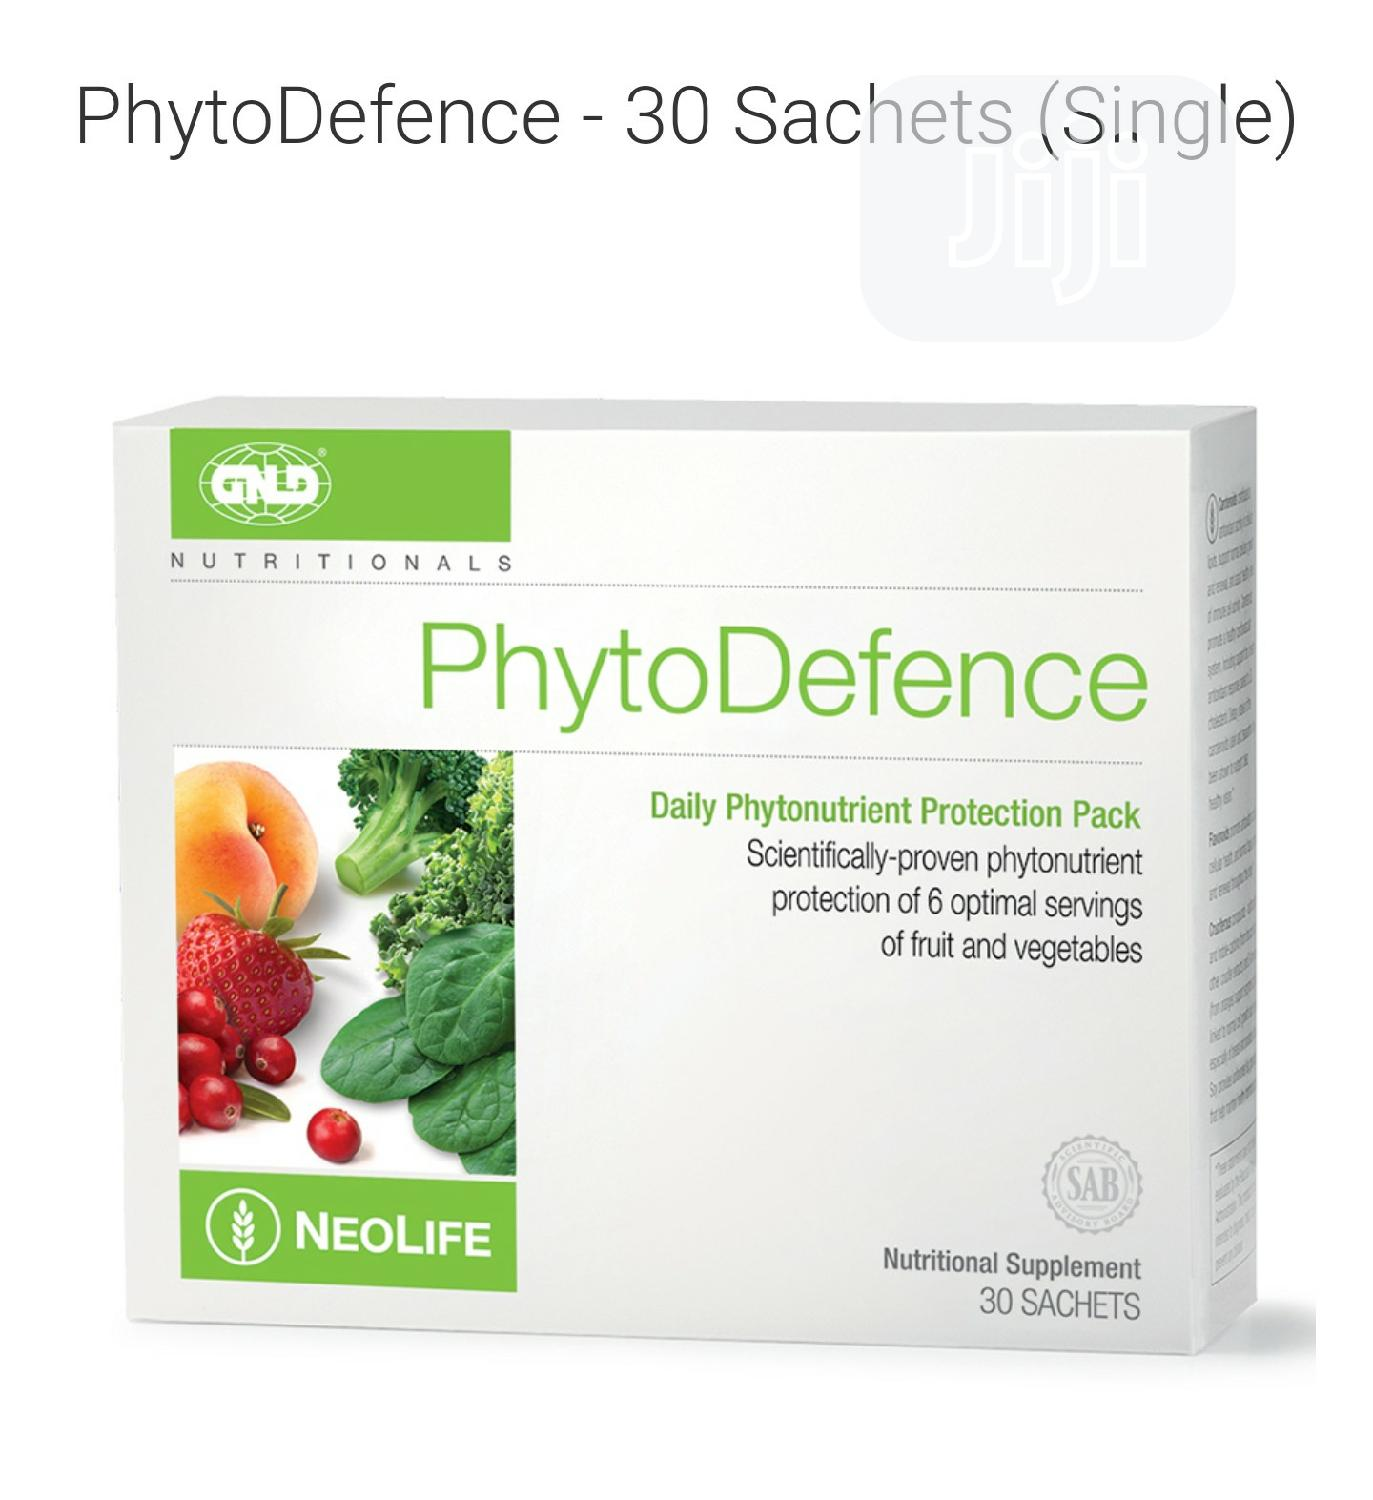 Phytodefence Immune Booster and Powerful Antioxidant